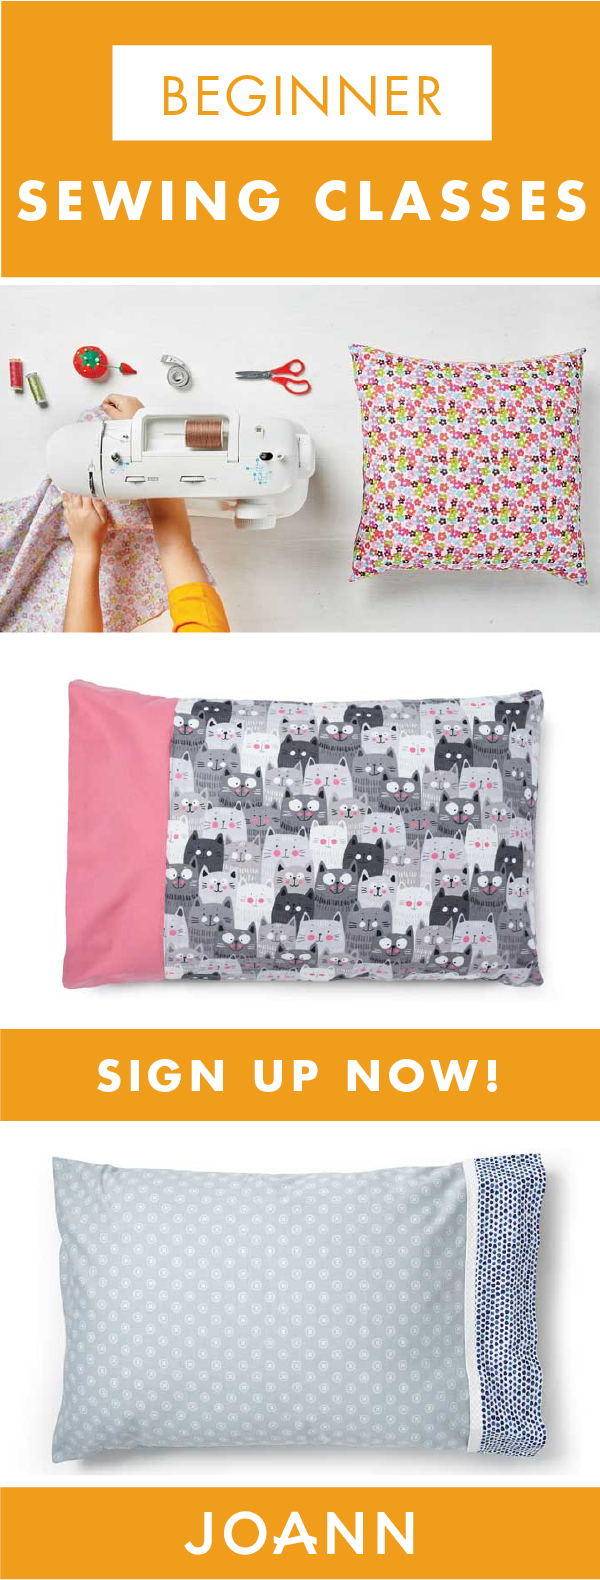 Always wanted to learn how to sew? You\'re in luck! JOANN offers ...